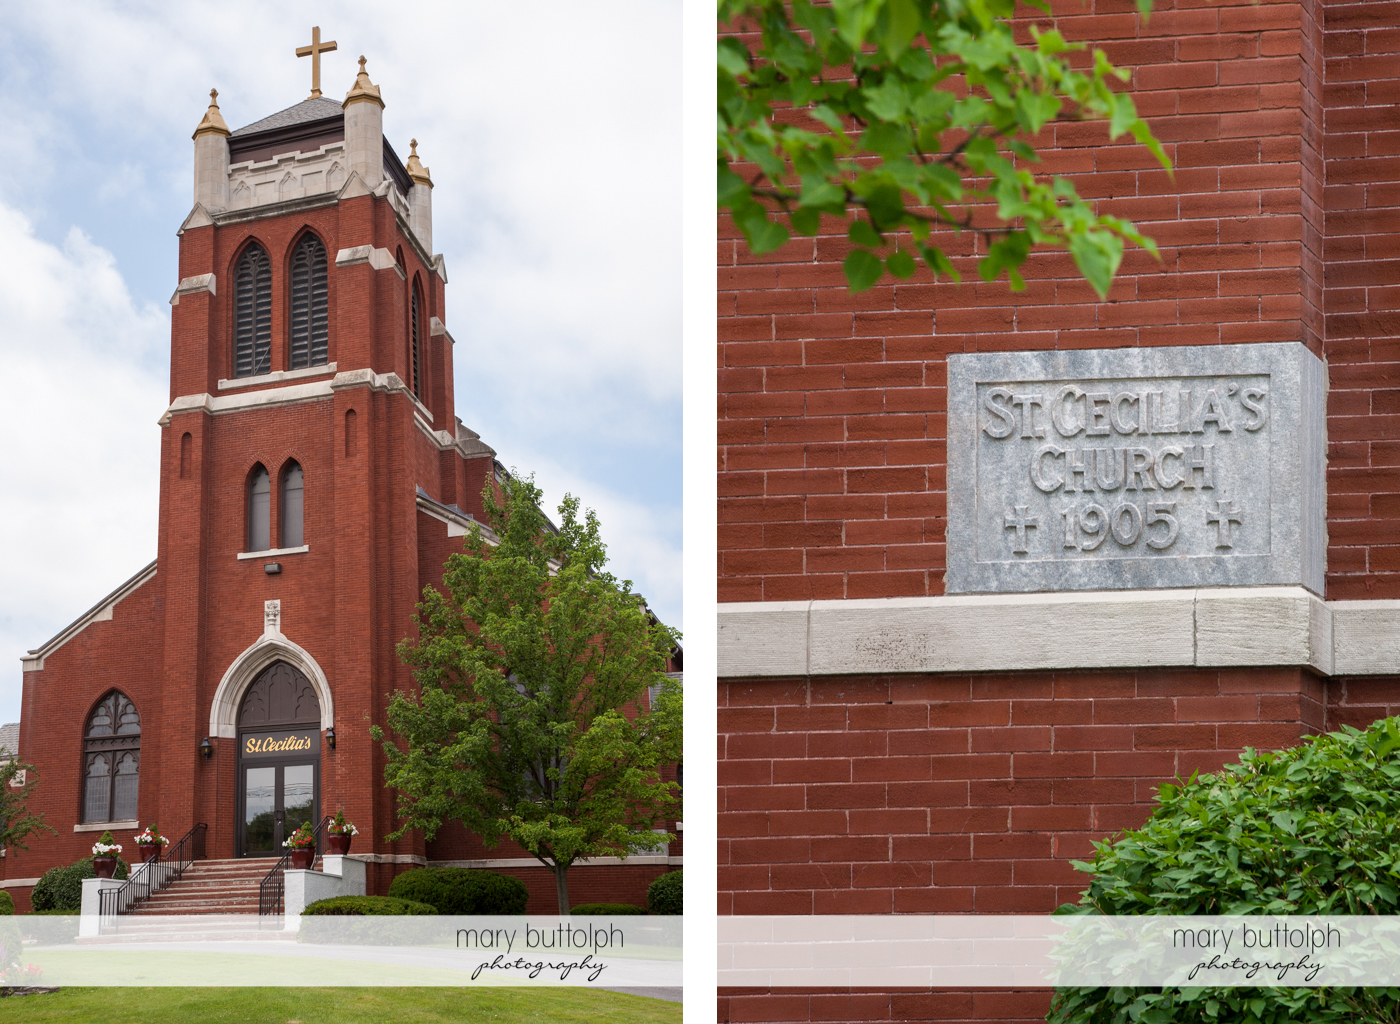 Facade of St. Cecilia's Church and its name on the brick wall at Emerson Park Pavilion Wedding